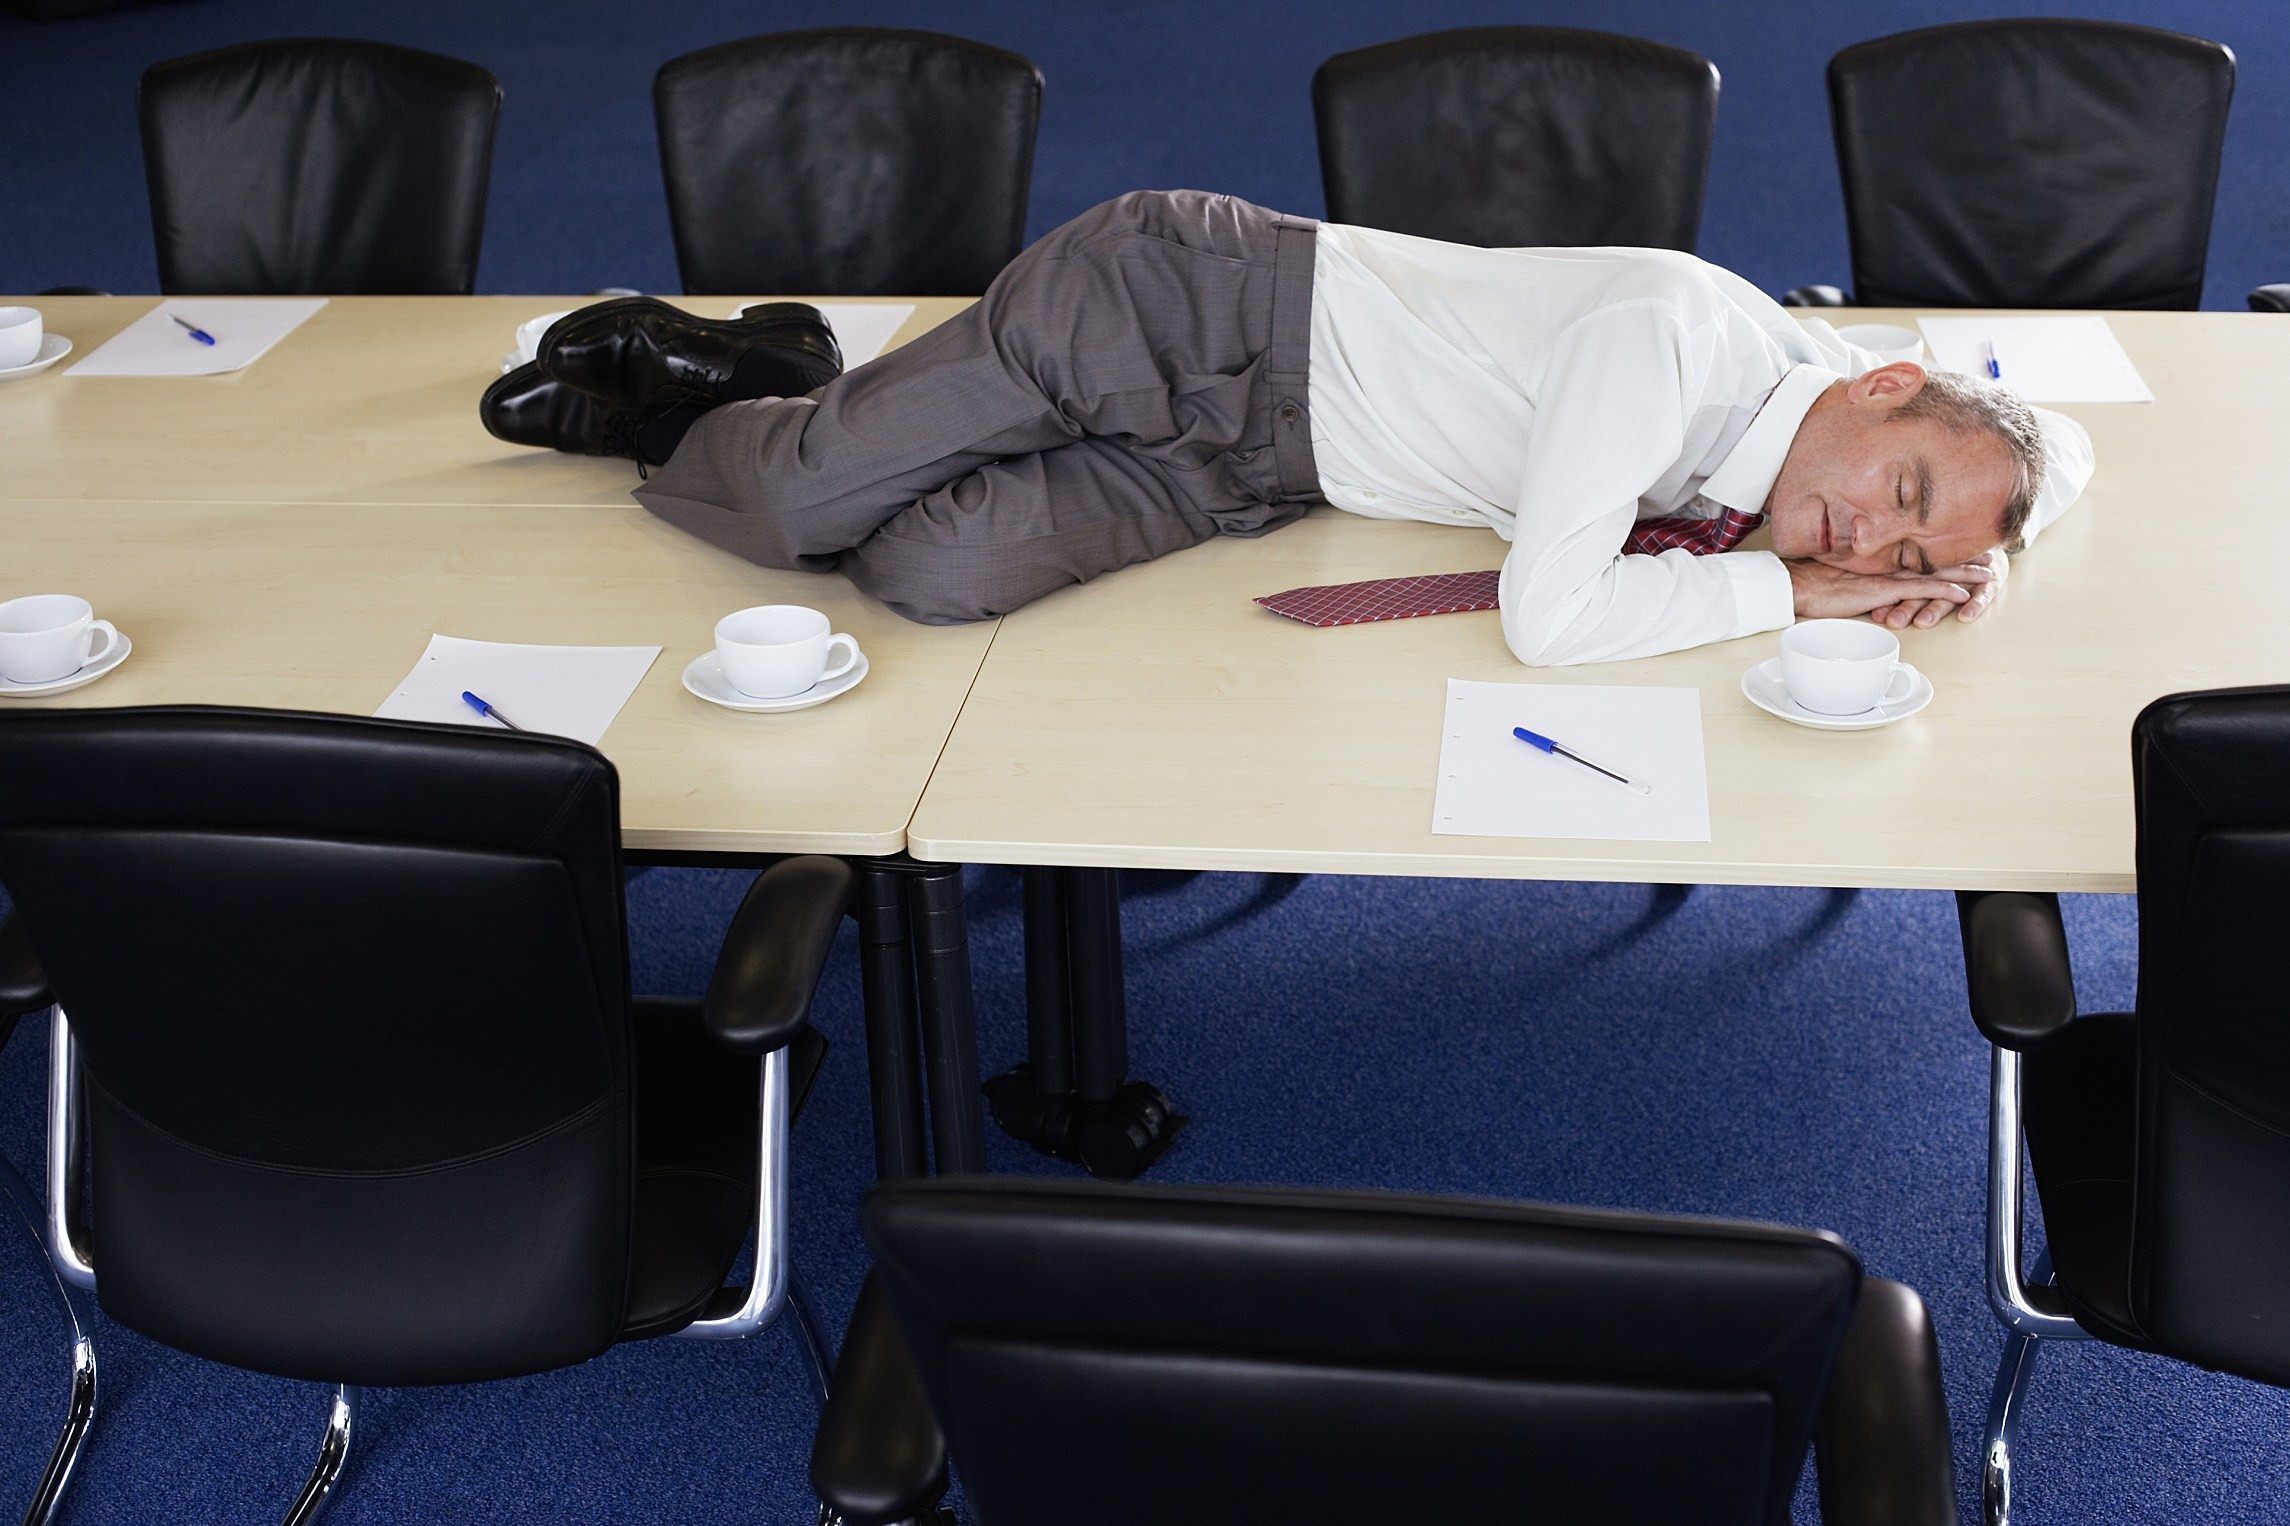 old man sleep at table during work